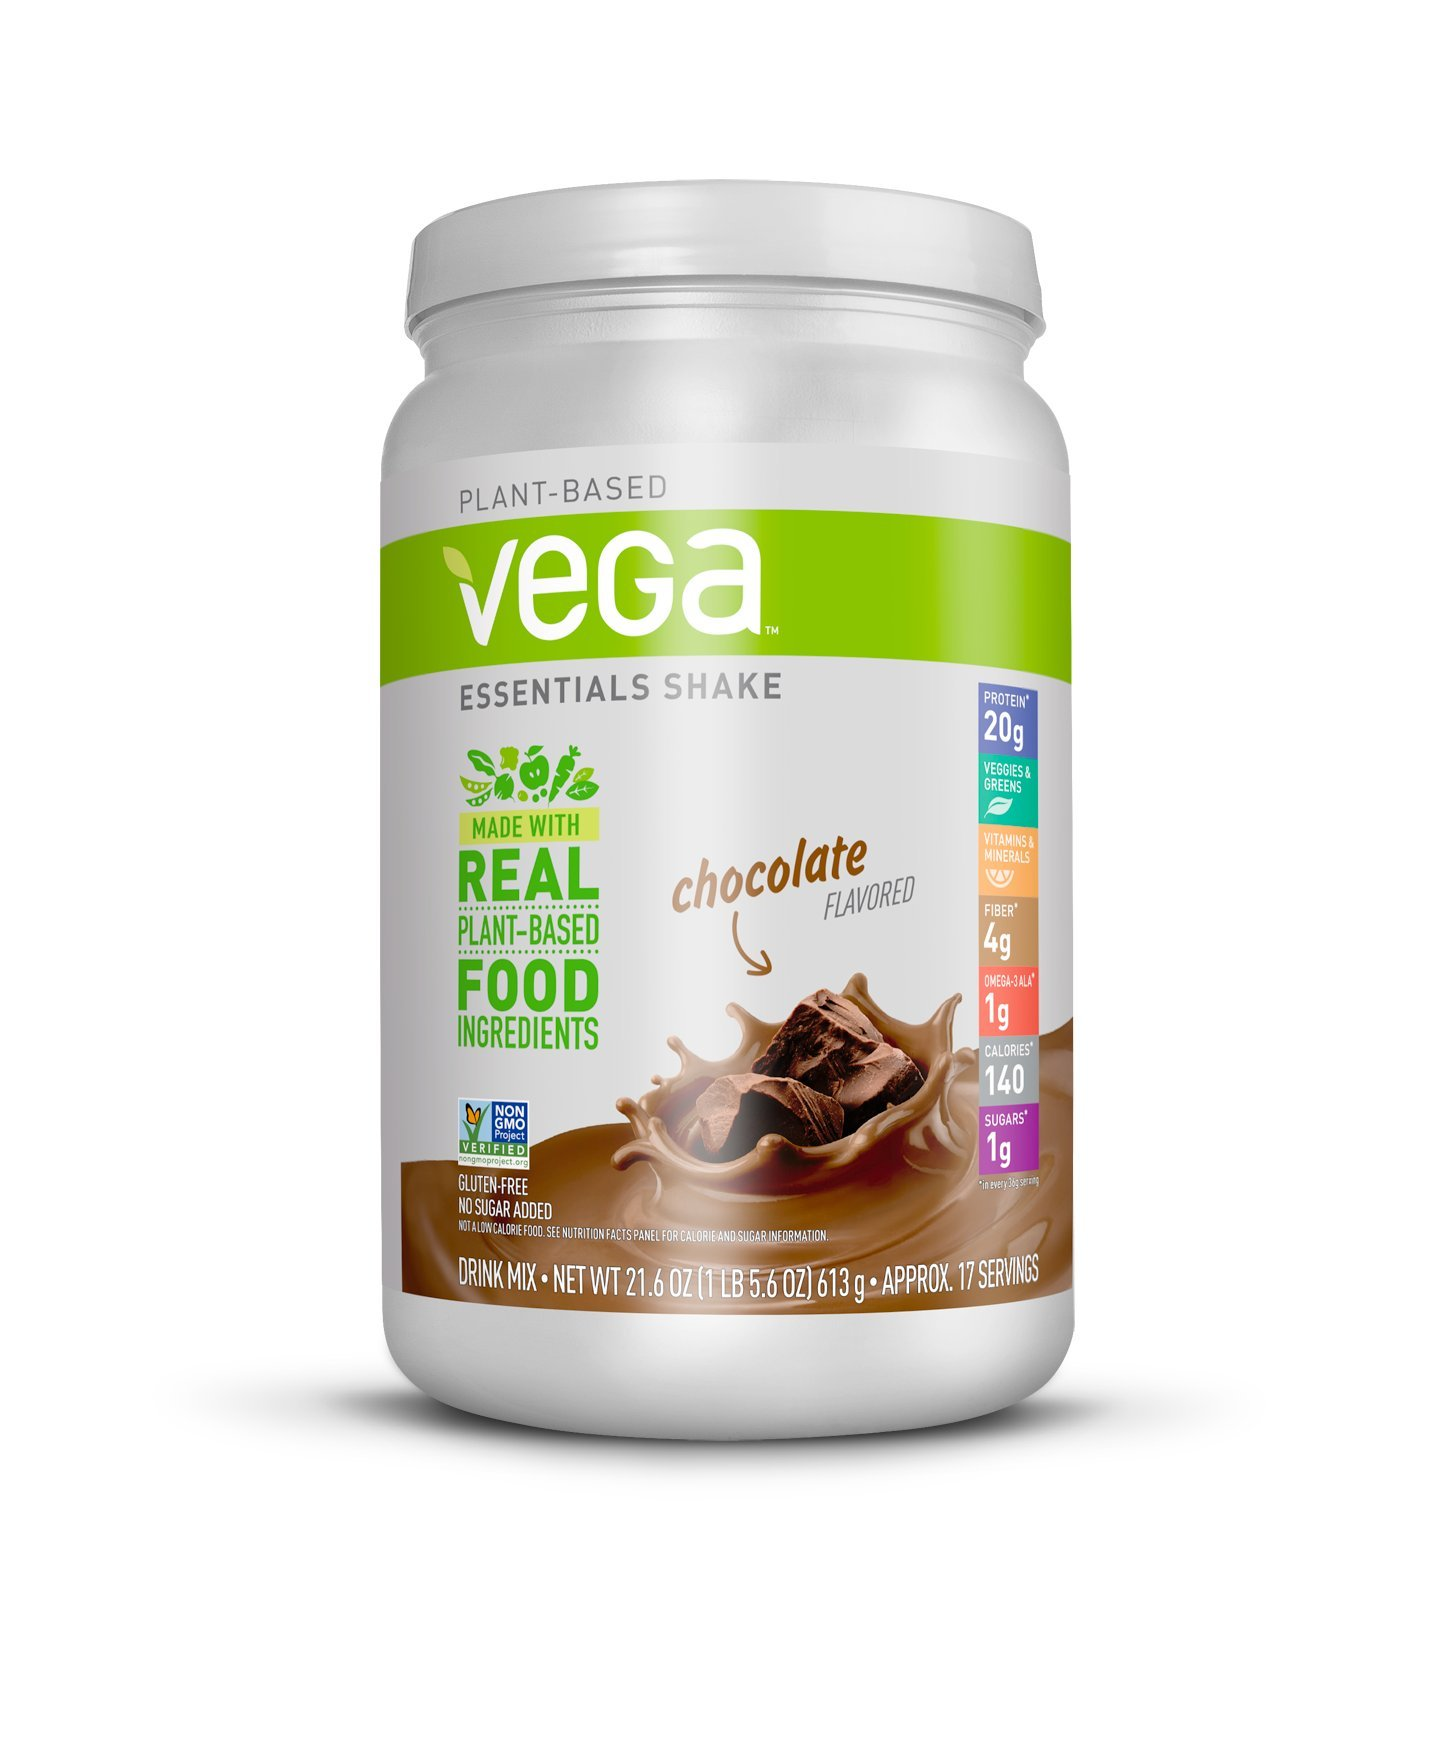 Vega Essentials Shake Chocolate(17 Servings, 21.6 oz.) - Plant Based Vegan Protein Powder, Non Dairy, Gluten Free, Smooth and Creamy, Non GMO by VEGA